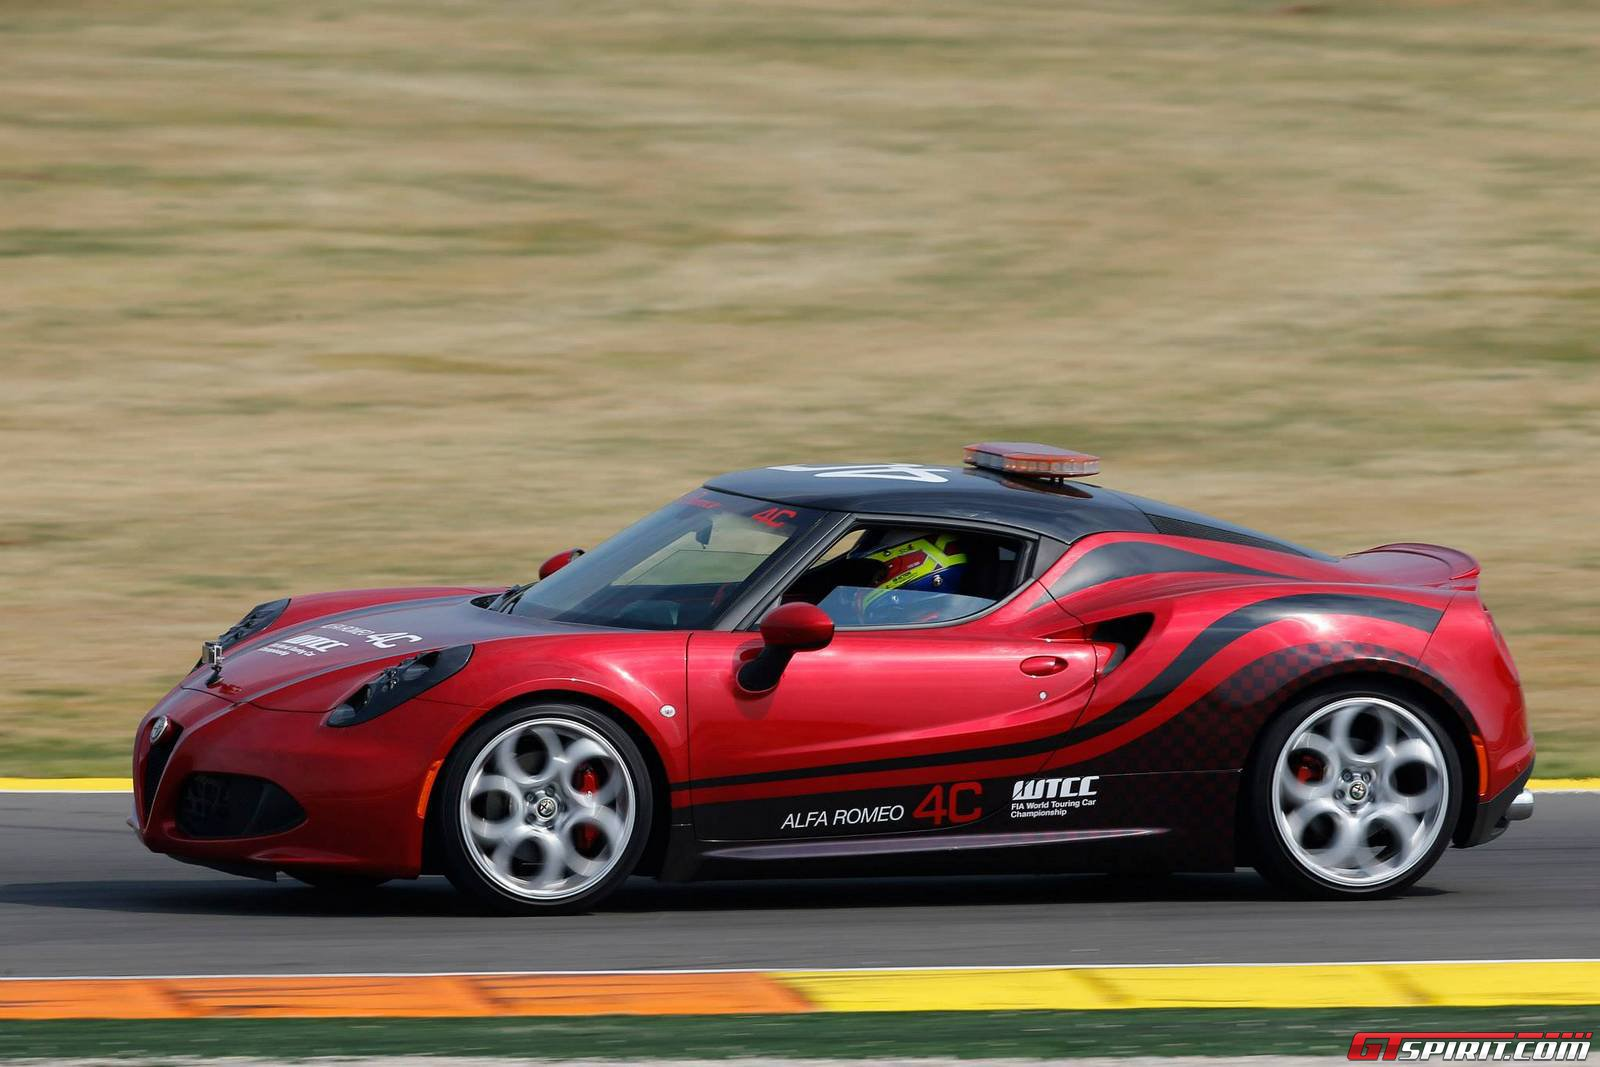 alfa romeo 4c at wtcc pre season tests in valencia gtspirit. Black Bedroom Furniture Sets. Home Design Ideas